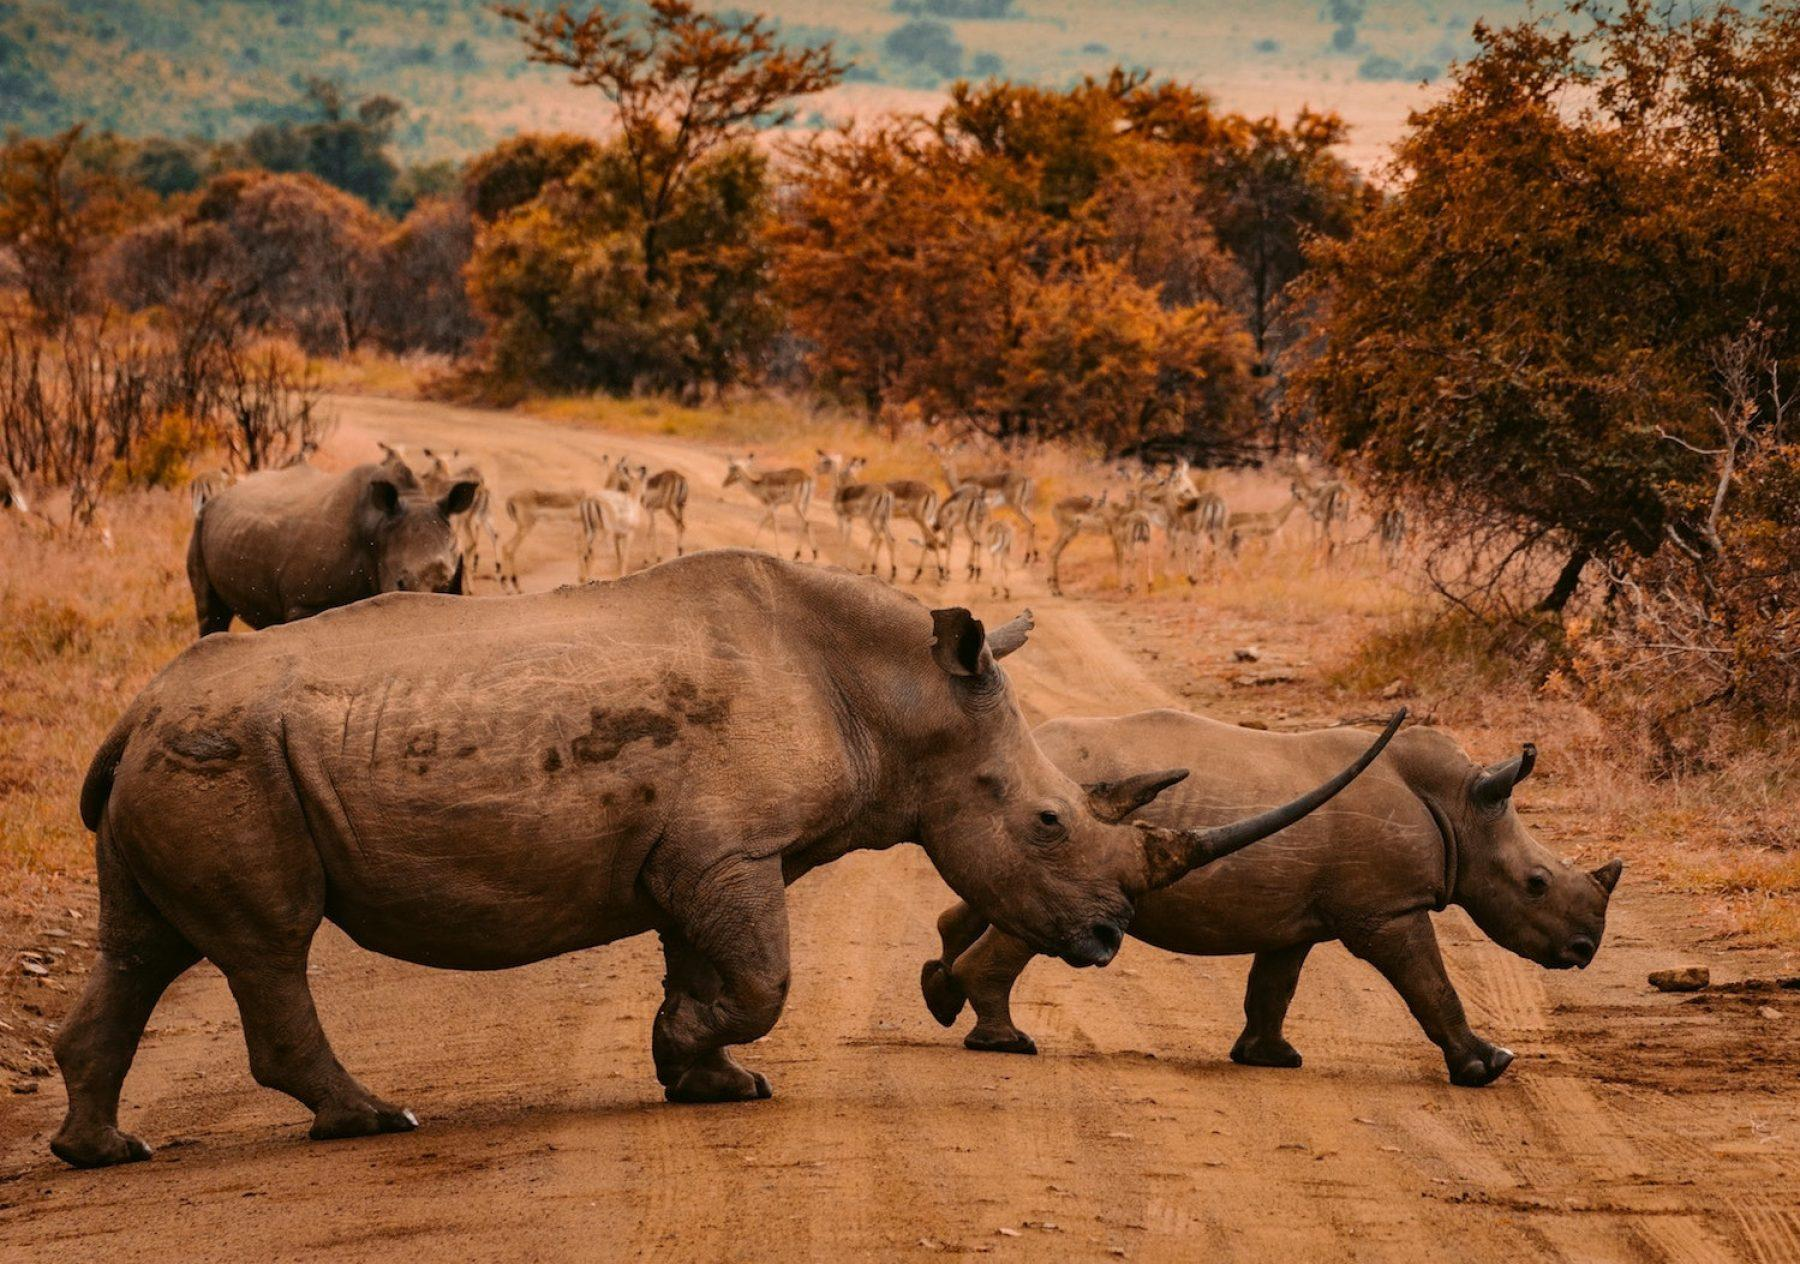 Image for Rhino deaths decline in South Africa after anti-poaching efforts